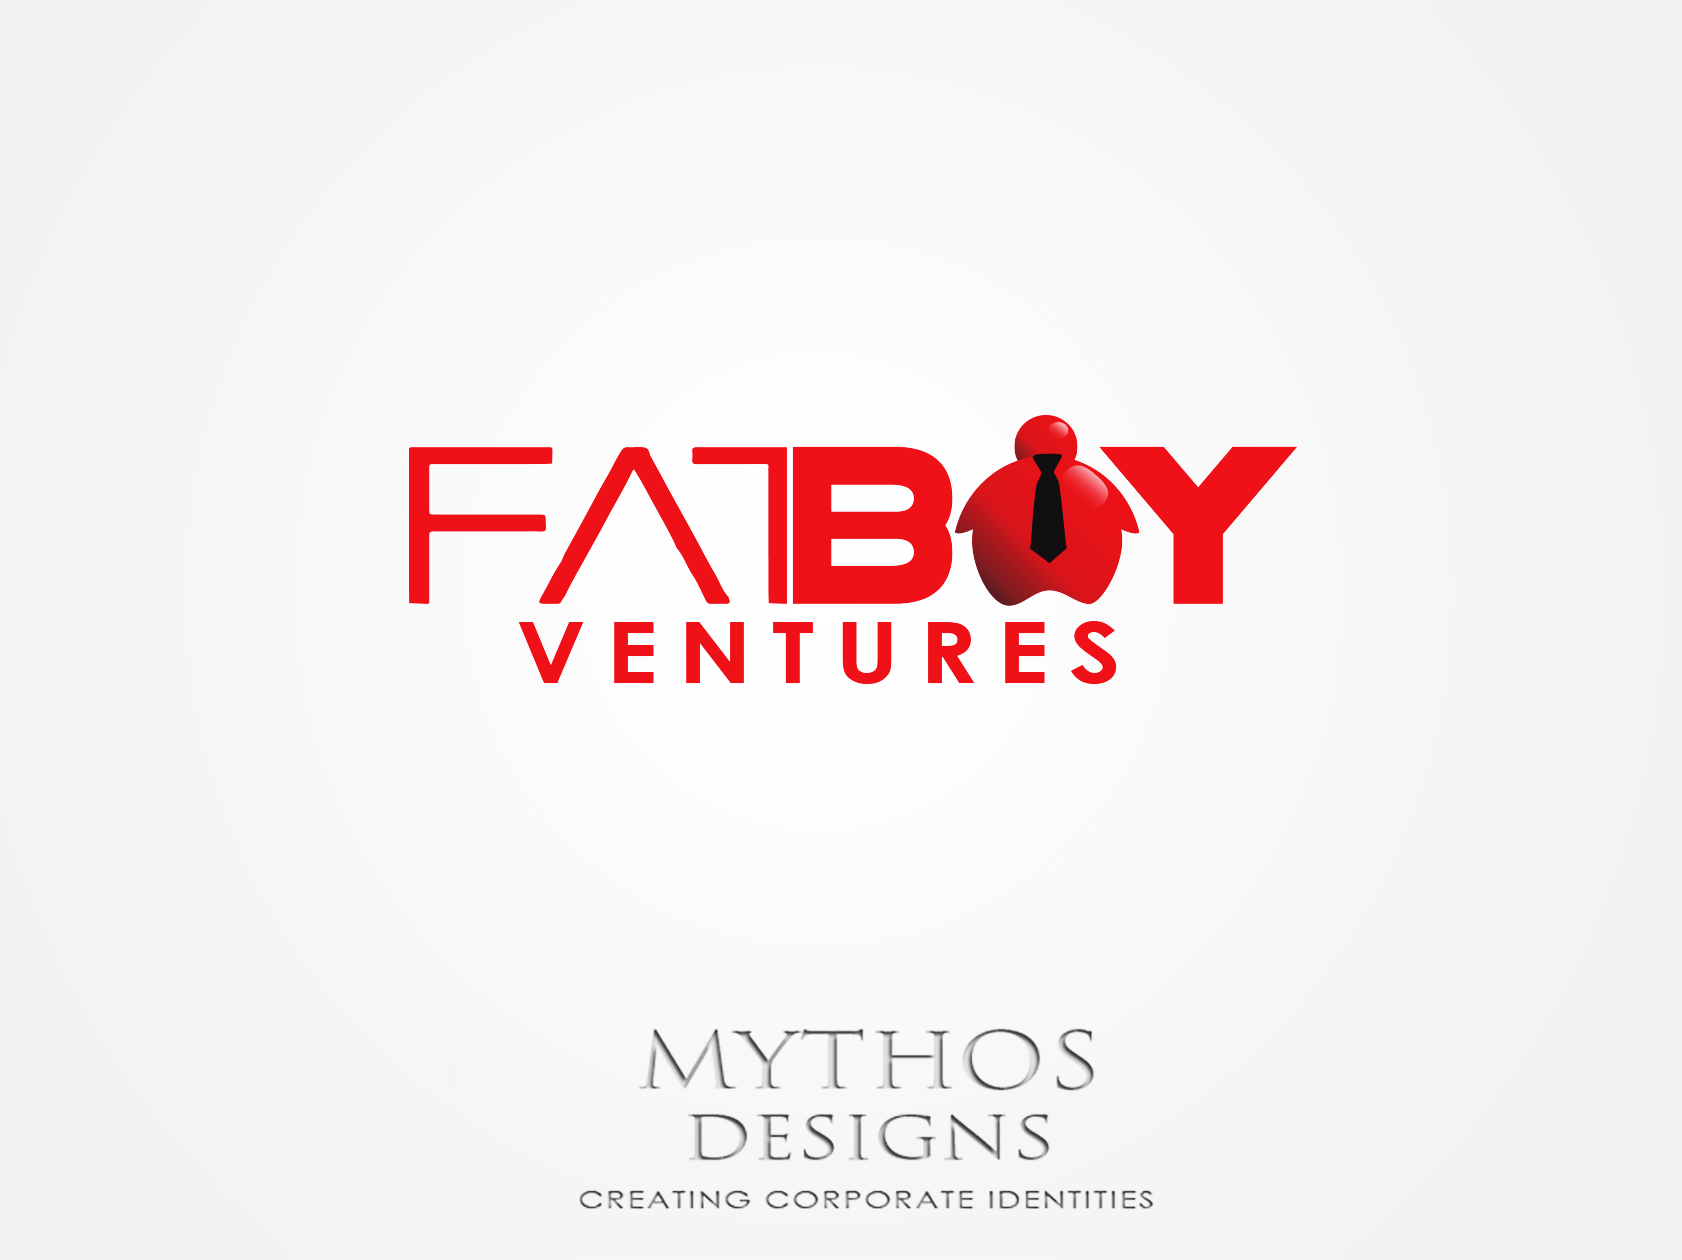 Logo Design by Mythos Designs - Entry No. 127 in the Logo Design Contest Fun Logo Design for Fat Boy Ventures.